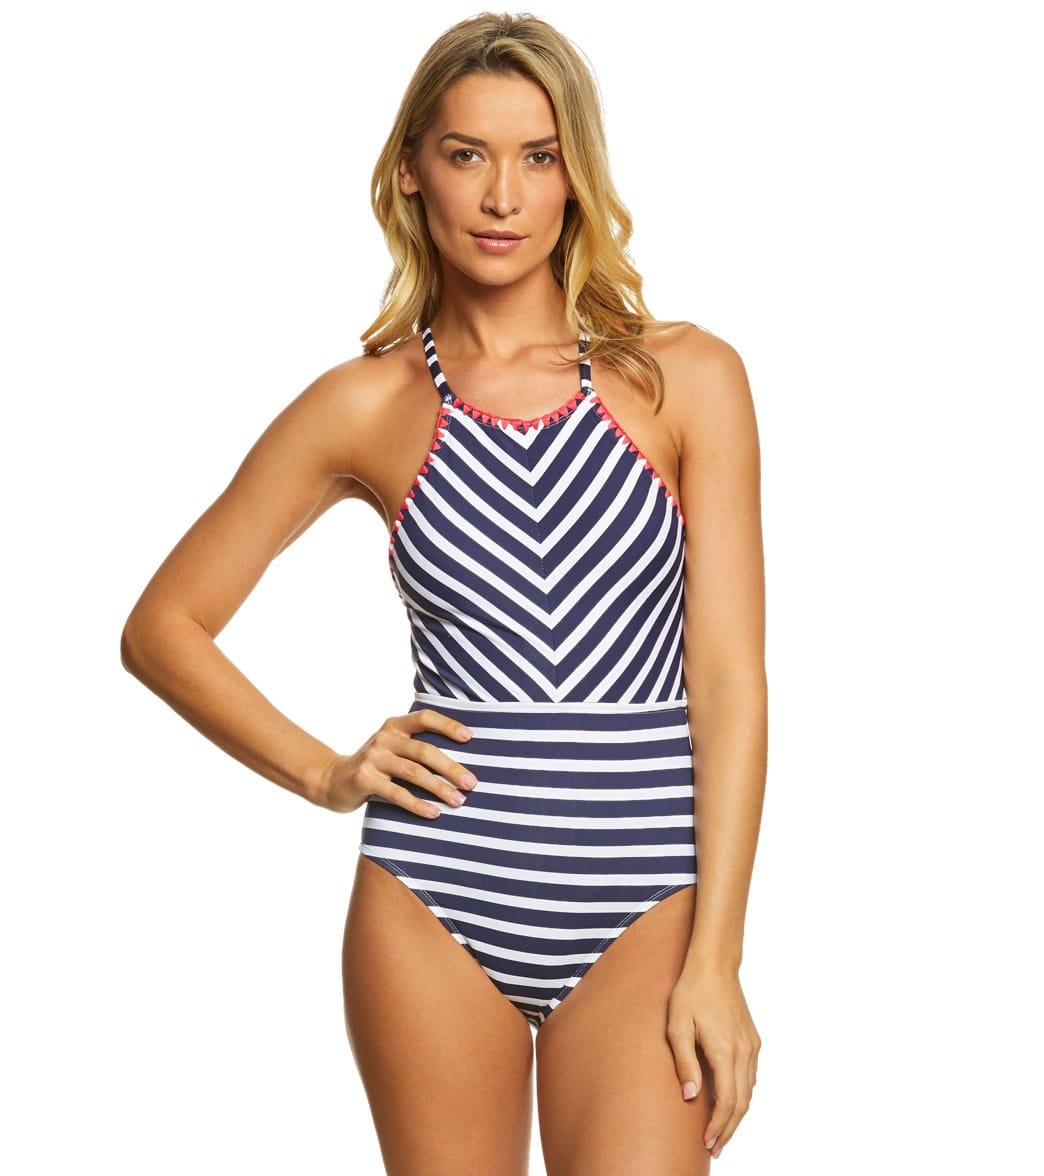 ef52a12db0 Tommy Bahama Breton Stripe High Neck One Piece Swimsuit at SwimOutlet.com -  Free Shipping